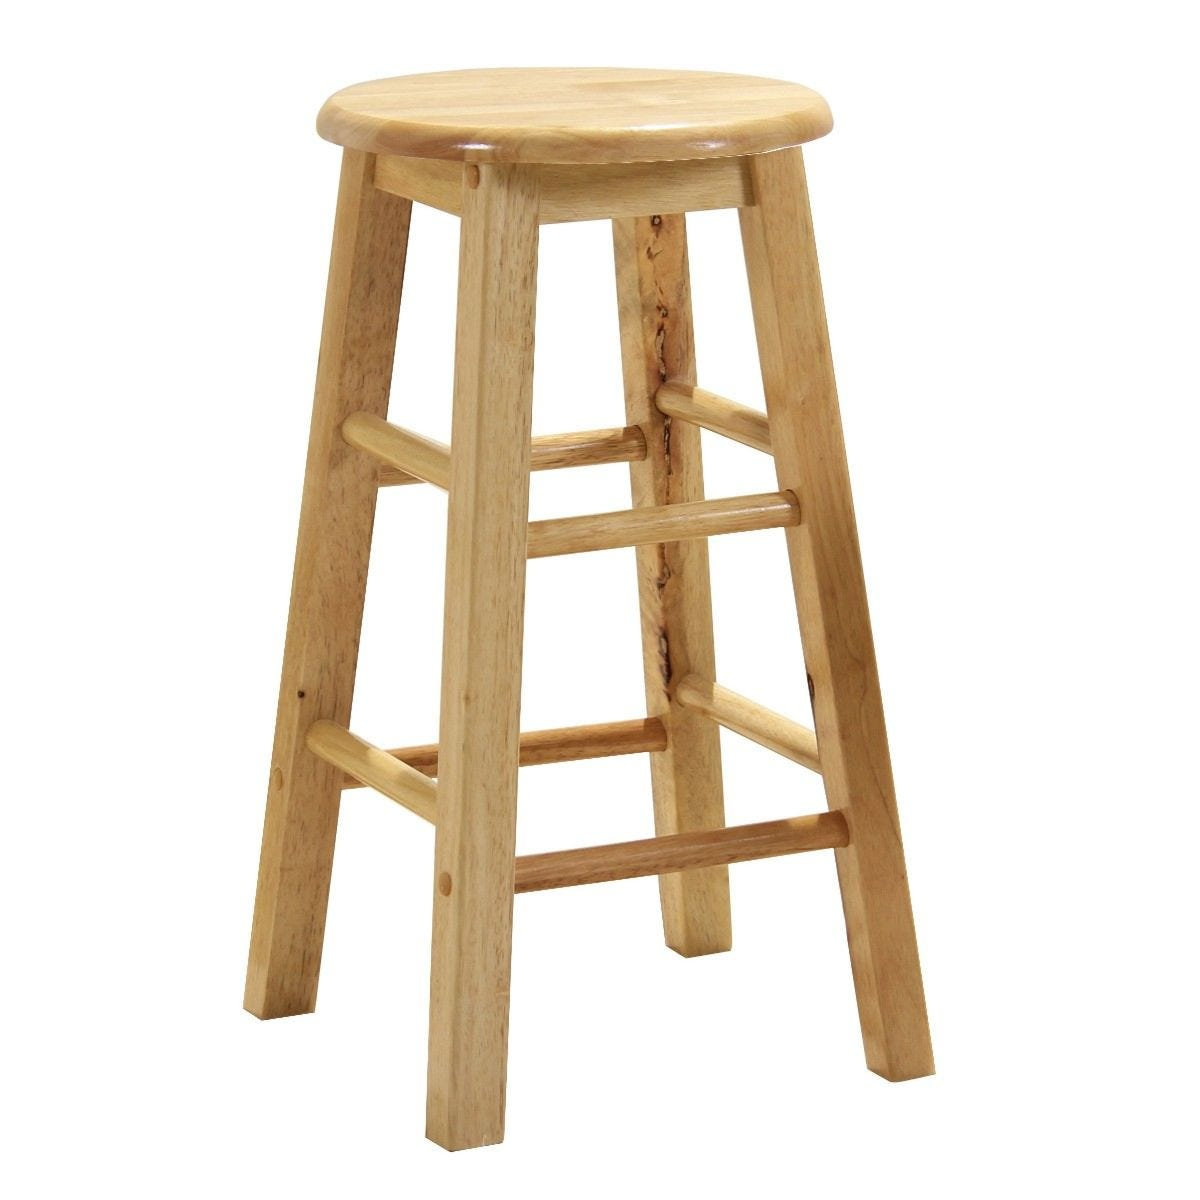 61cm Natural Wood Bar Stool Pair With Swivel Seats